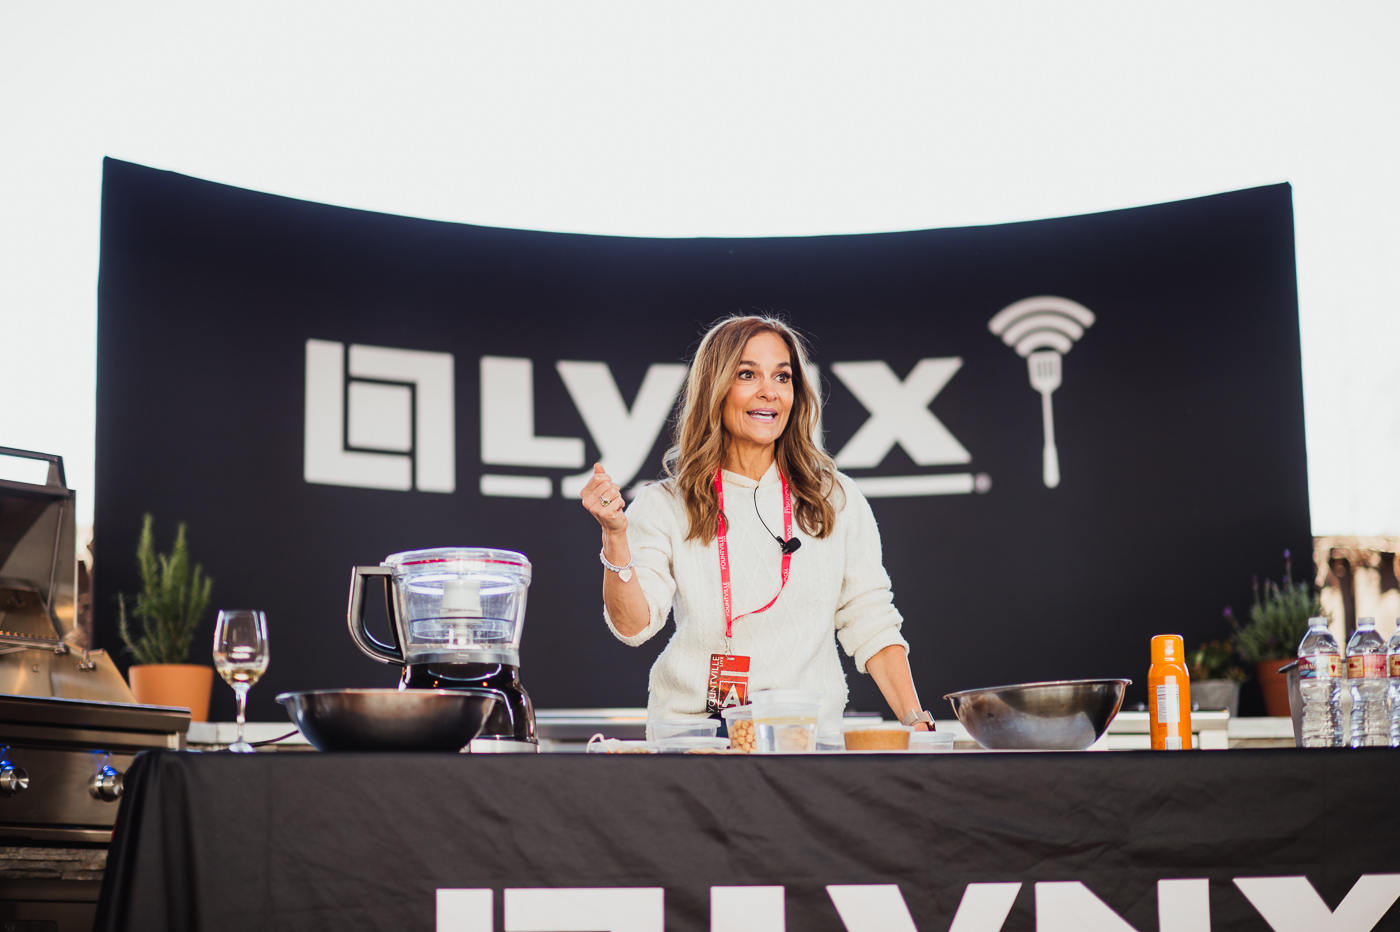 Joy Bauer of the Today Show teaches a cooking lesson on the Lynx Grill Stage during the Taste of Yountville on Saturday Afternoon.